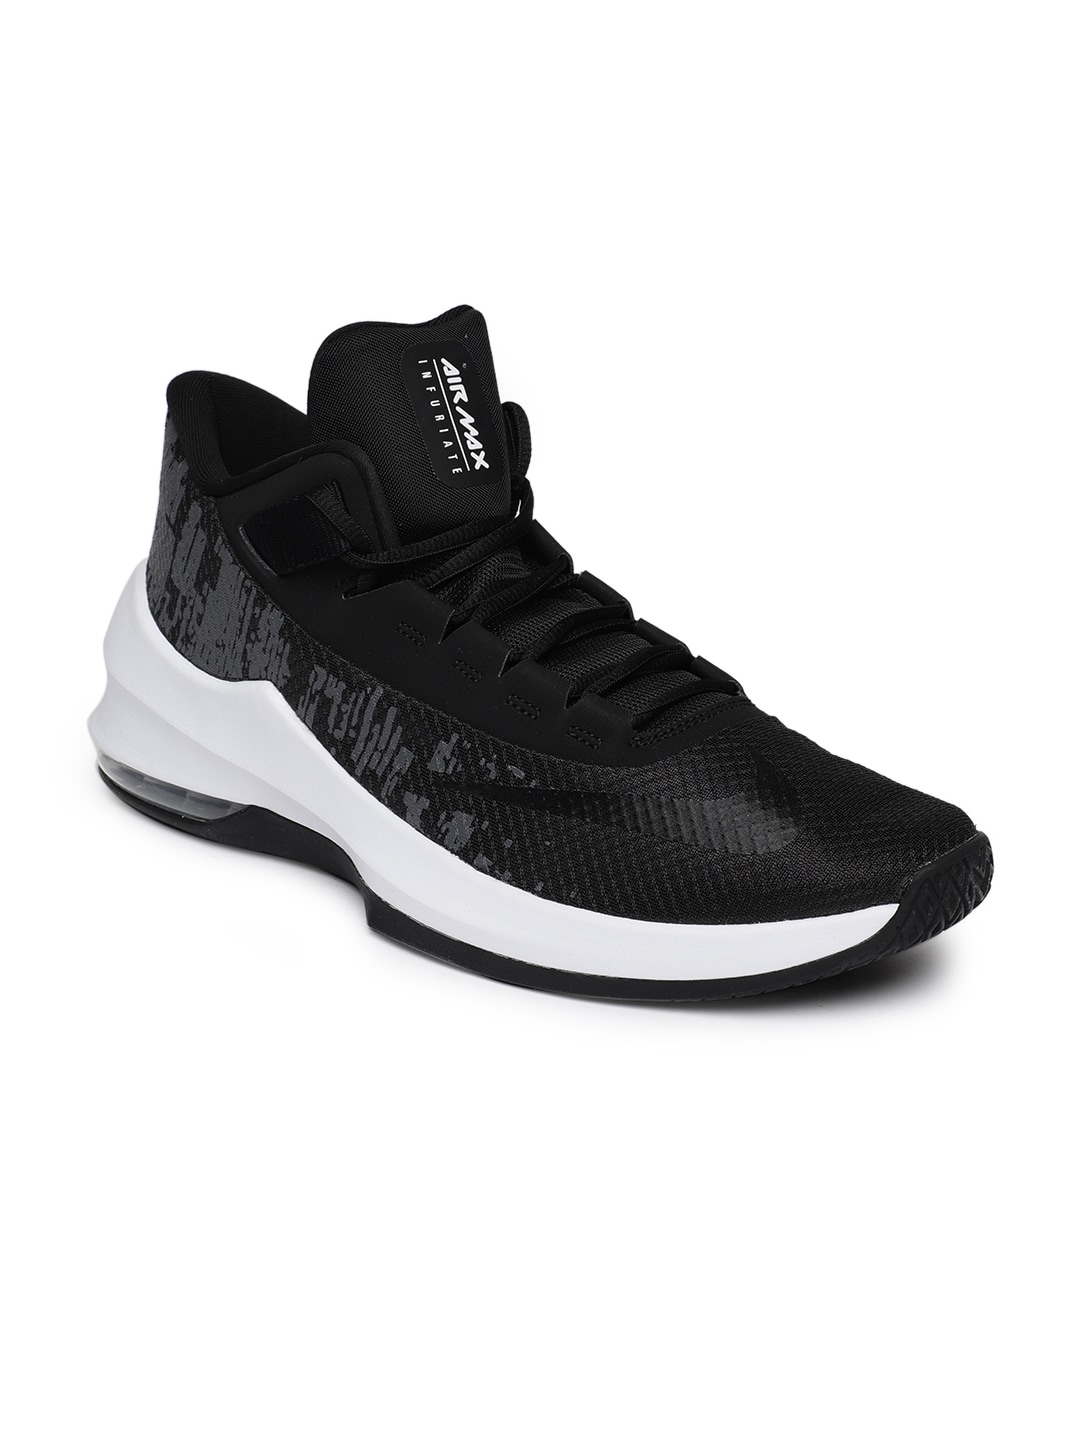 cheaper 33935 ed2a0 Low Nike Shoes - Buy Low Nike Shoes online in India